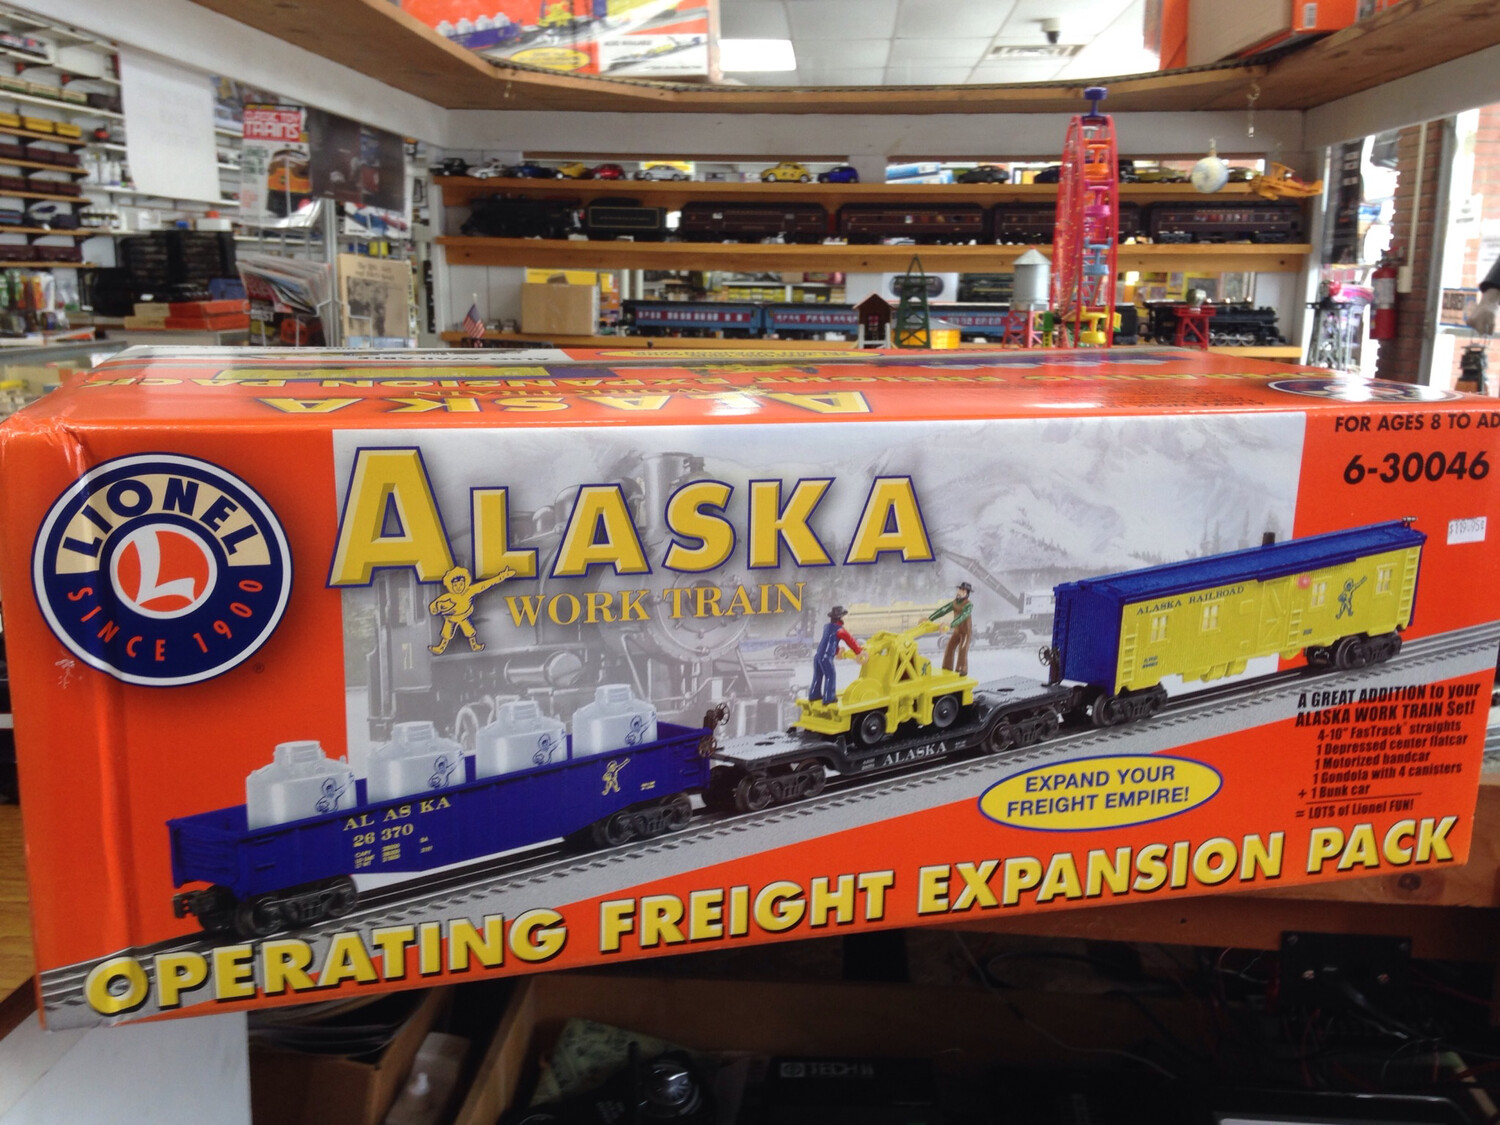 Lionel Alaska Operating Freight Expansion Pack. 6-30046